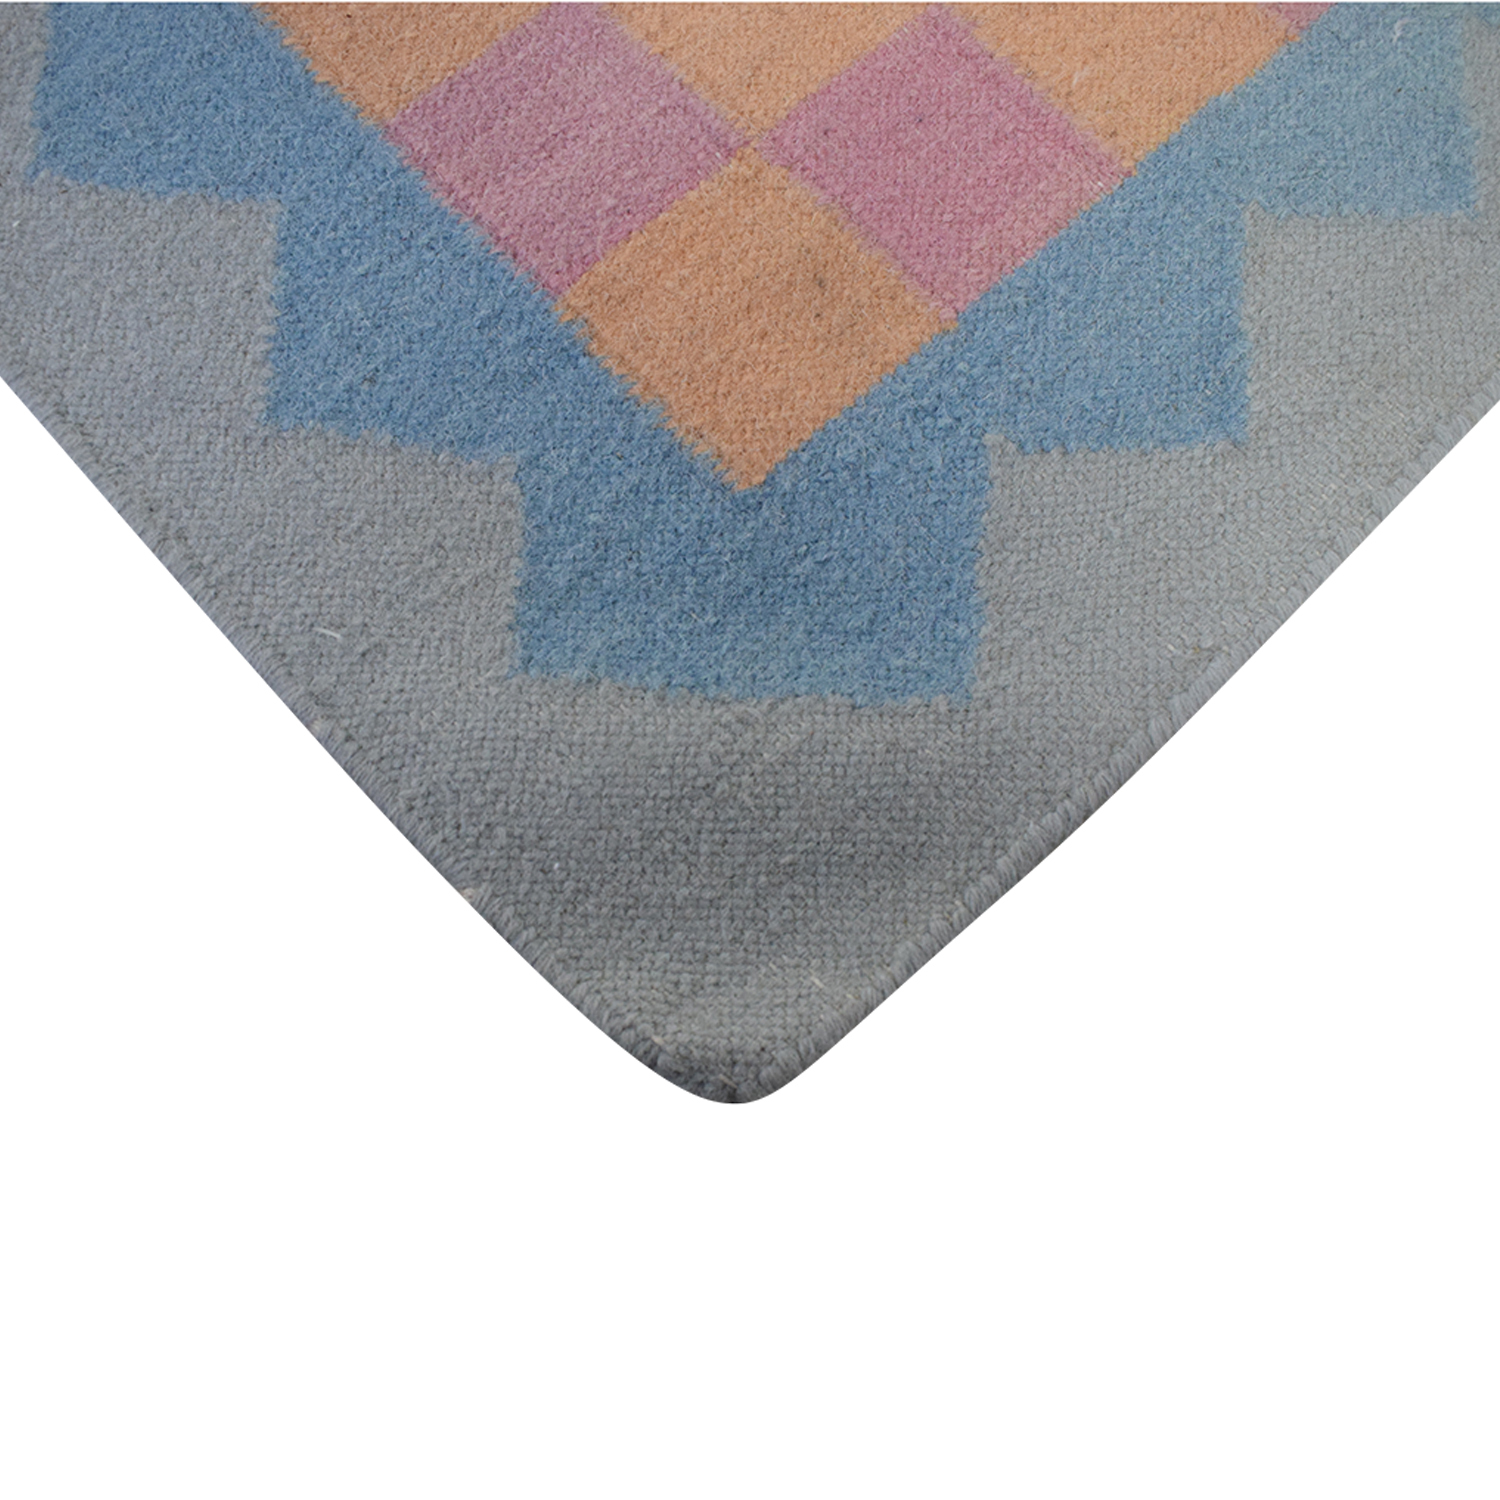 ABC Carpet & Home ABC Carpet & Home Pastel Rug Decor